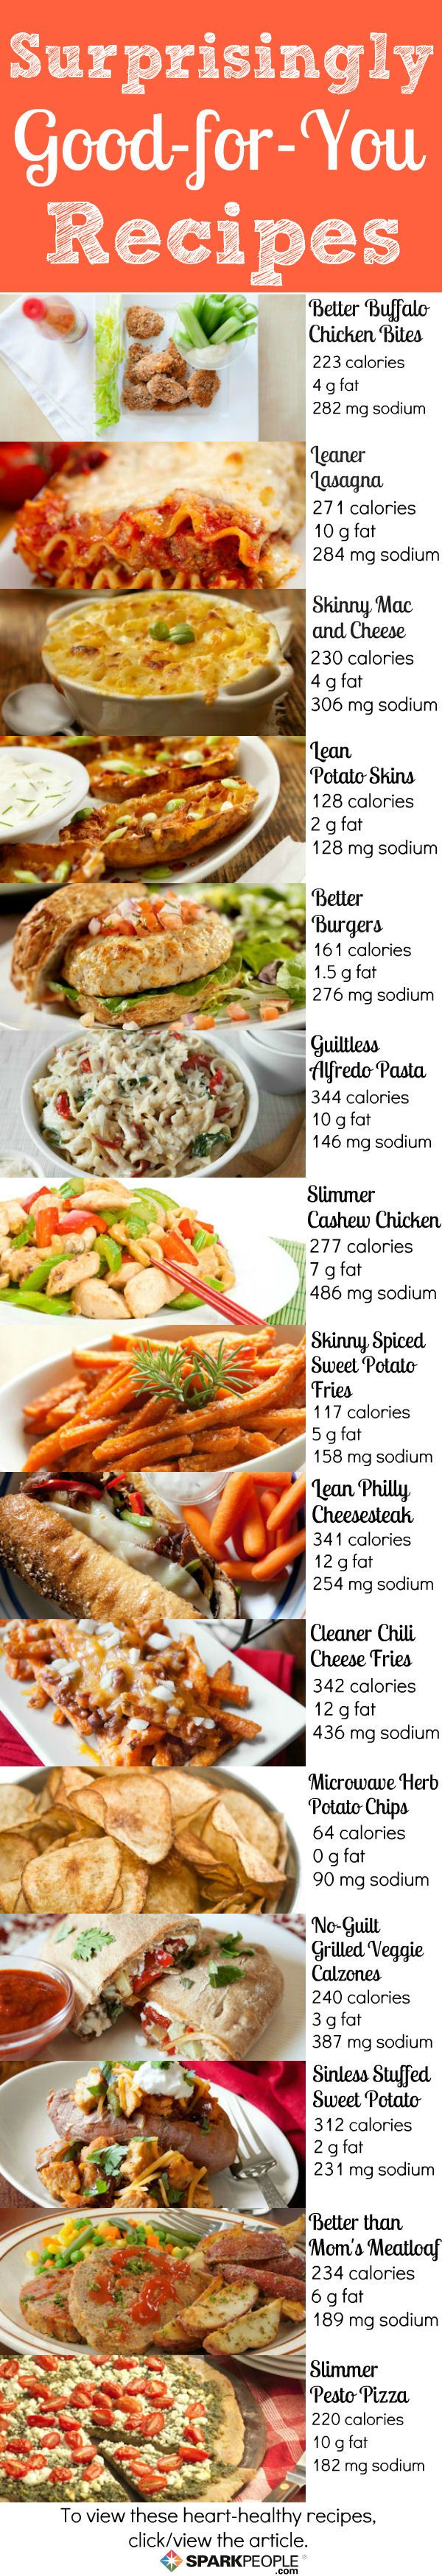 15 Heart-Healthy Comfort Food Swaps: Your favorite foods made healthier! Click for the recipes.  | via @SparkPeople #food #nutrition